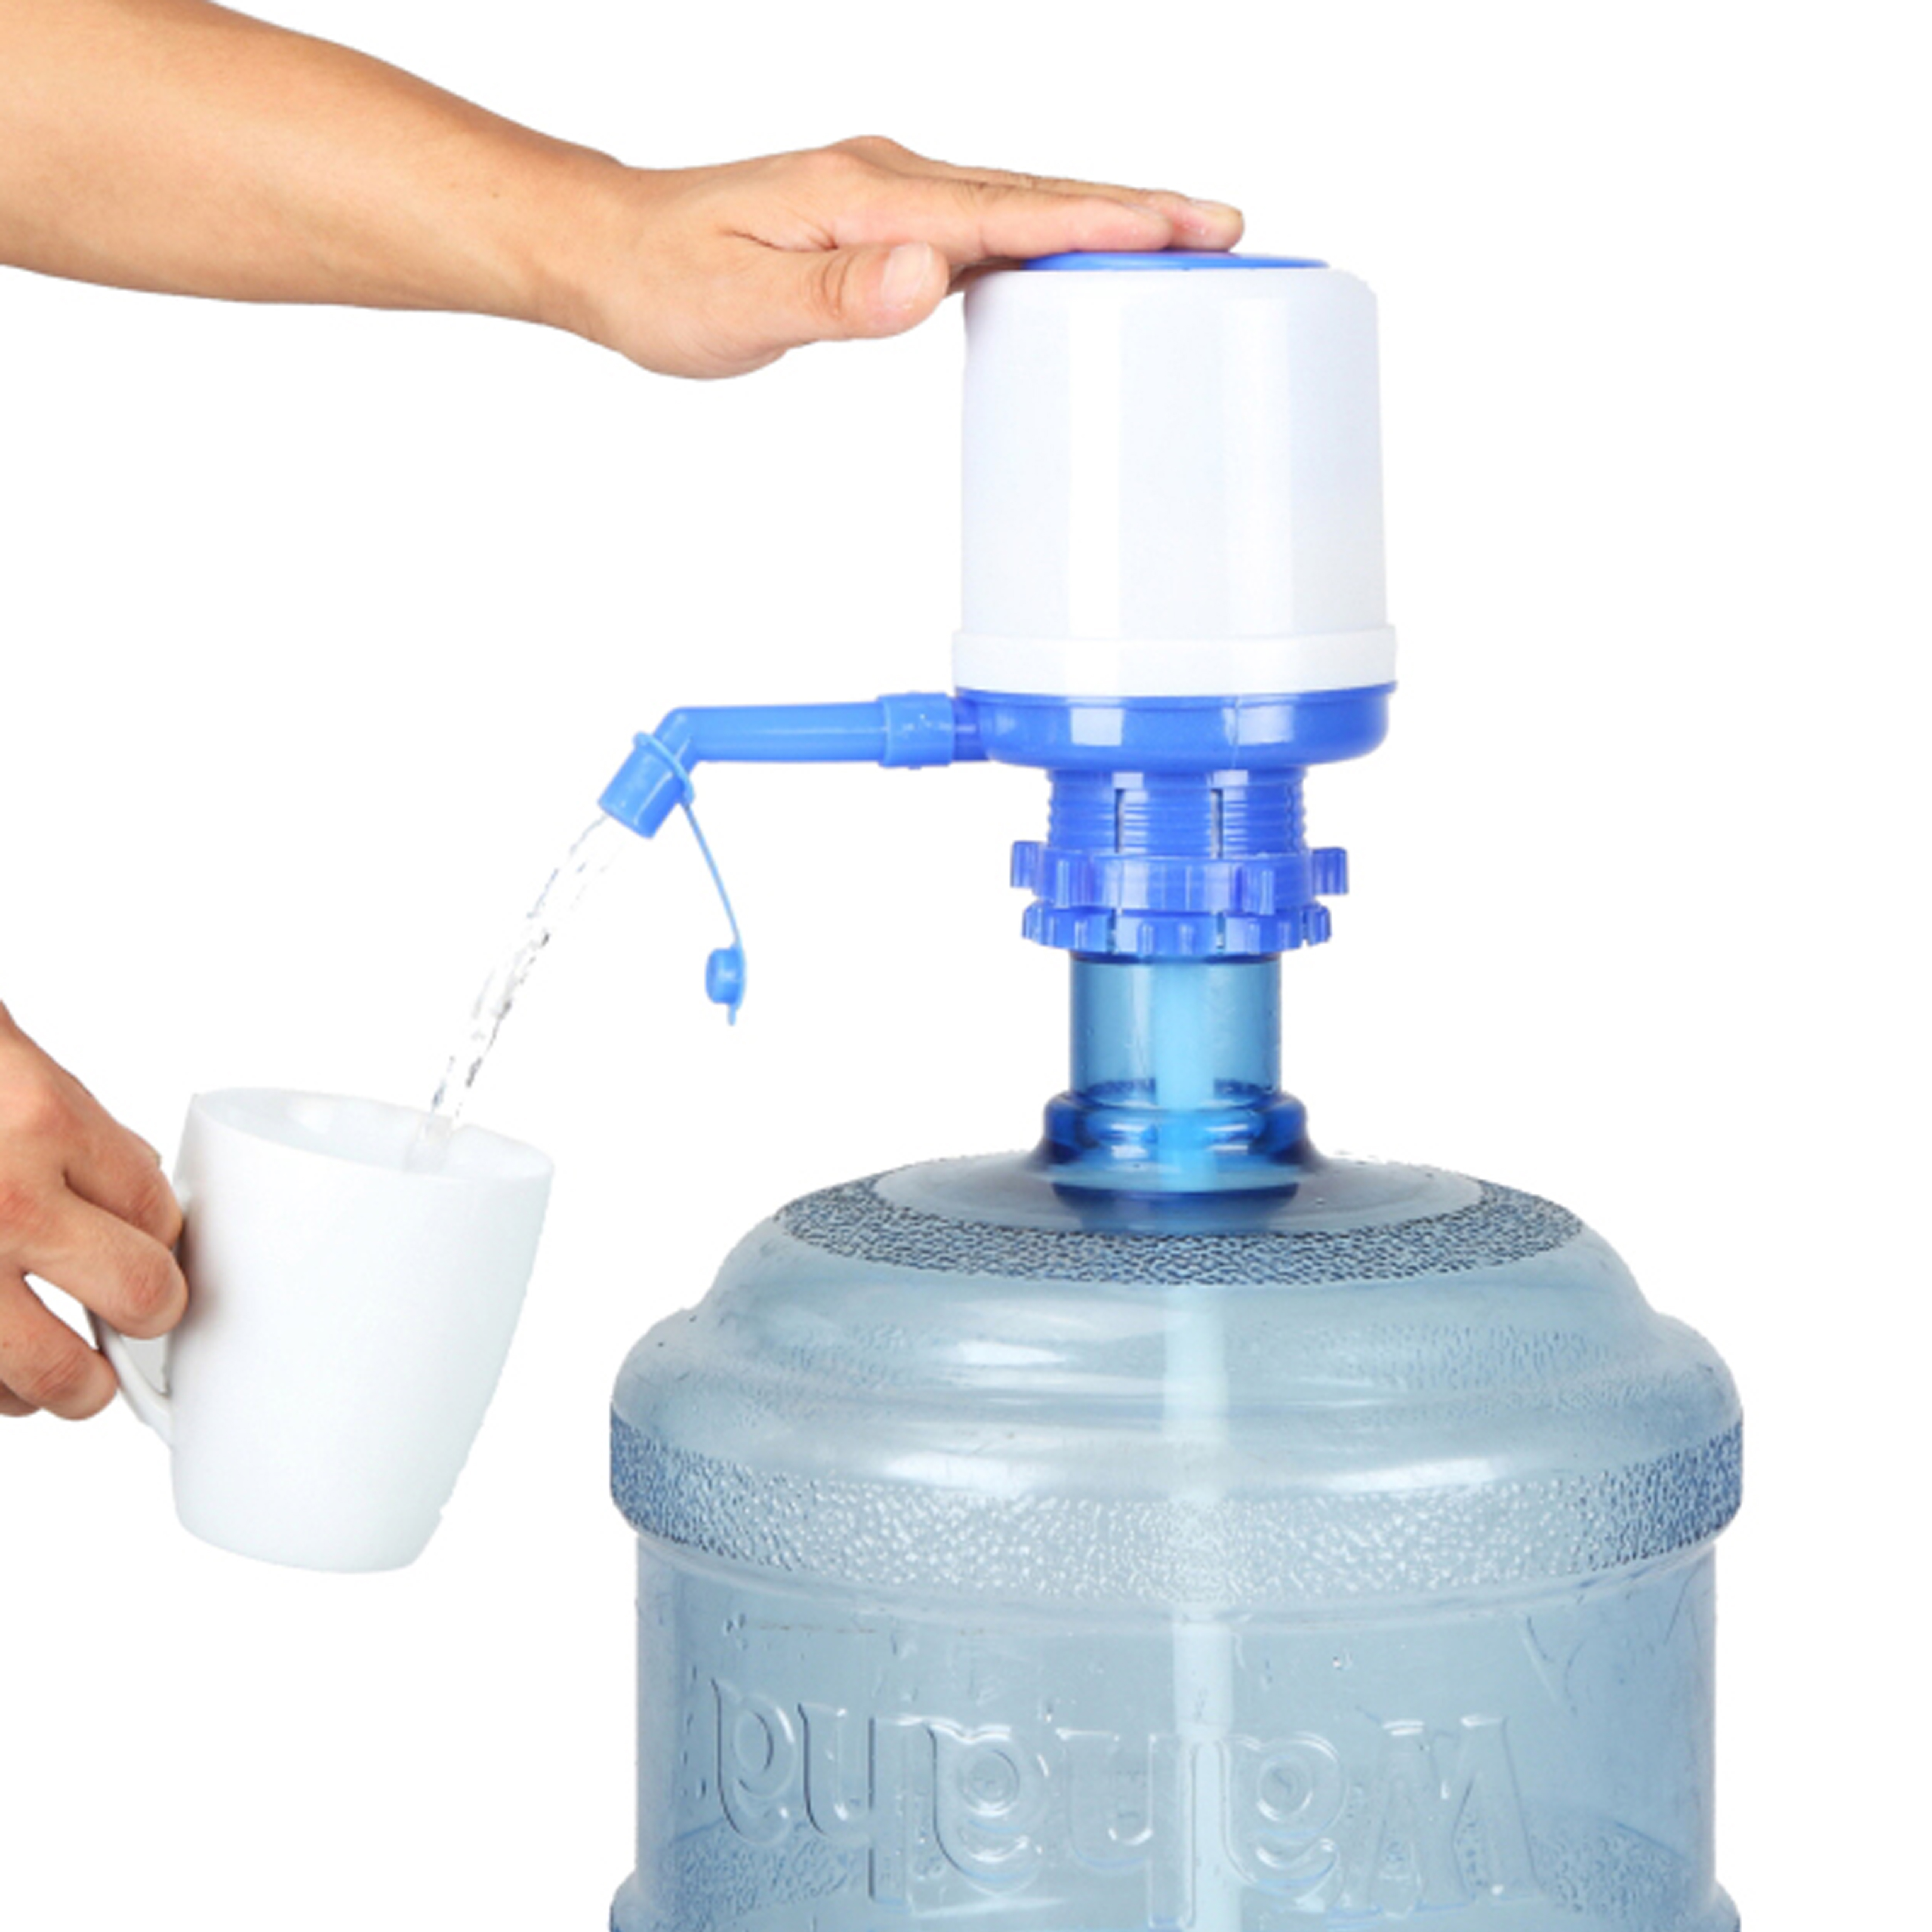 HUILE HL-01 manual drinking water <strong>pump</strong> for bottled water Amazon choice